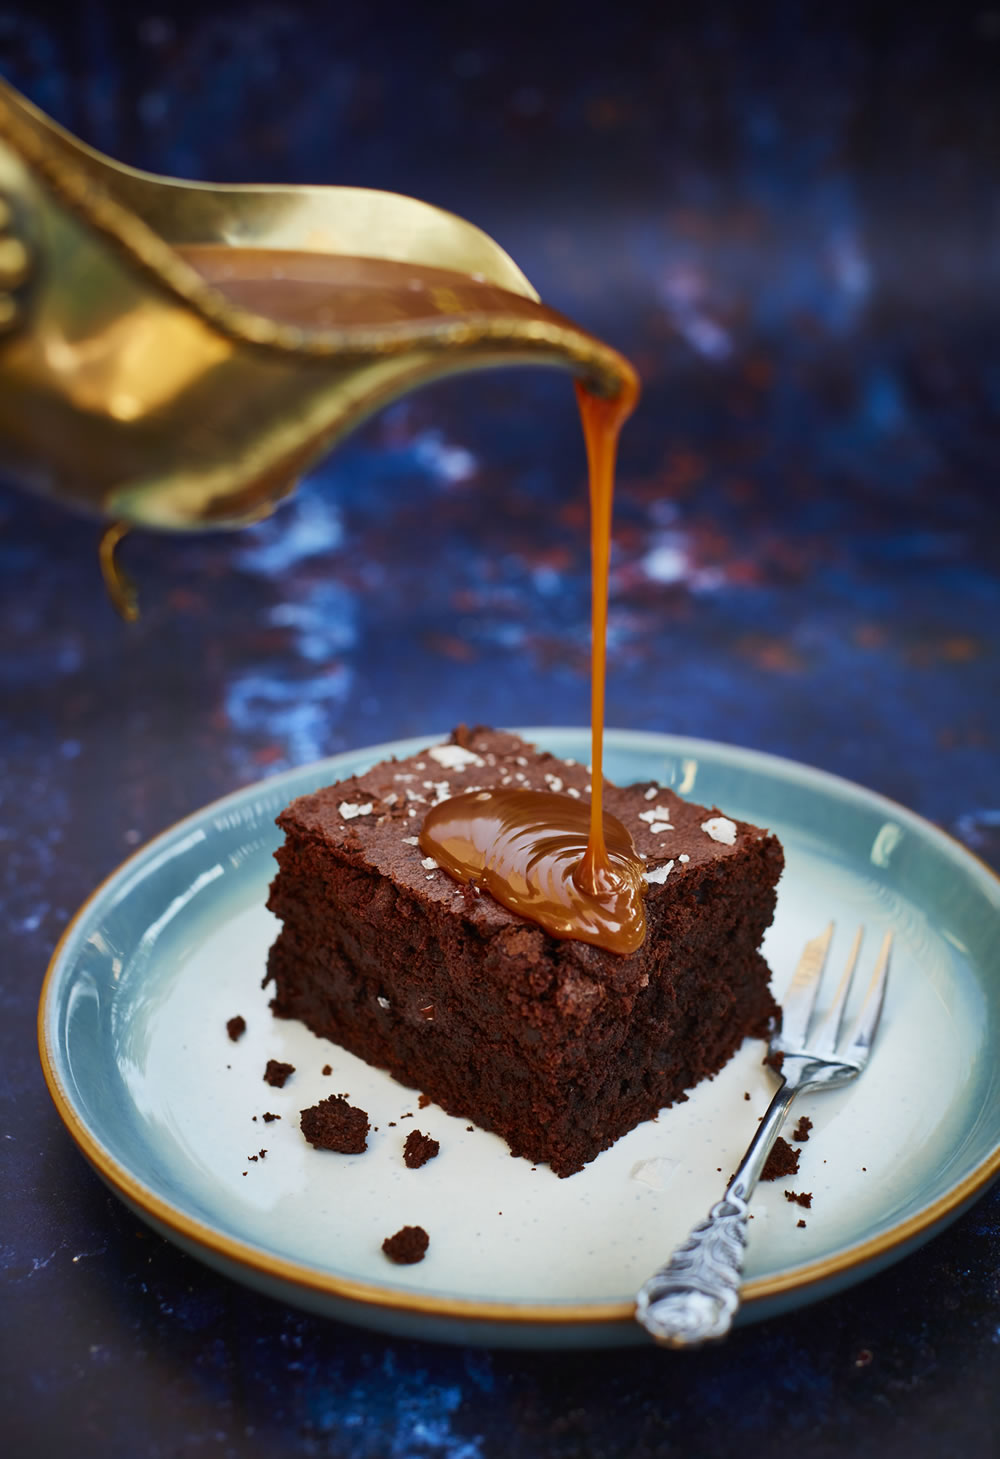 Recipe of the Week: The ultimate chocolate cake